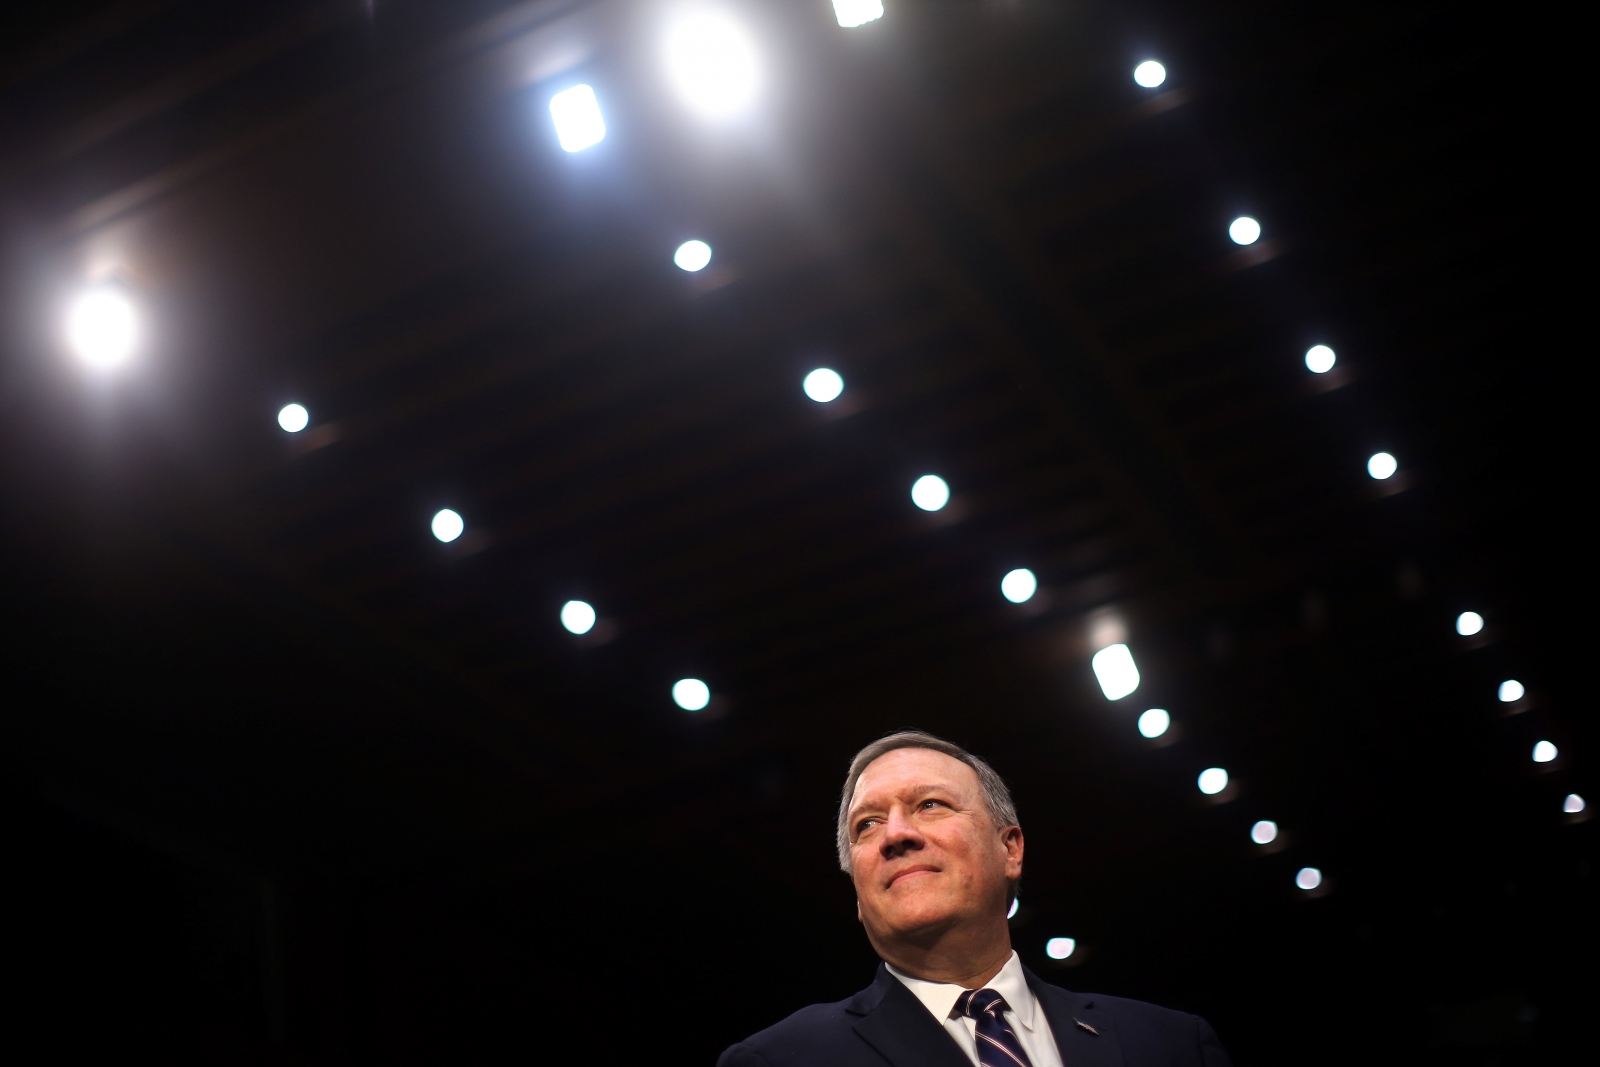 USA-CONGRESS/POMPEO